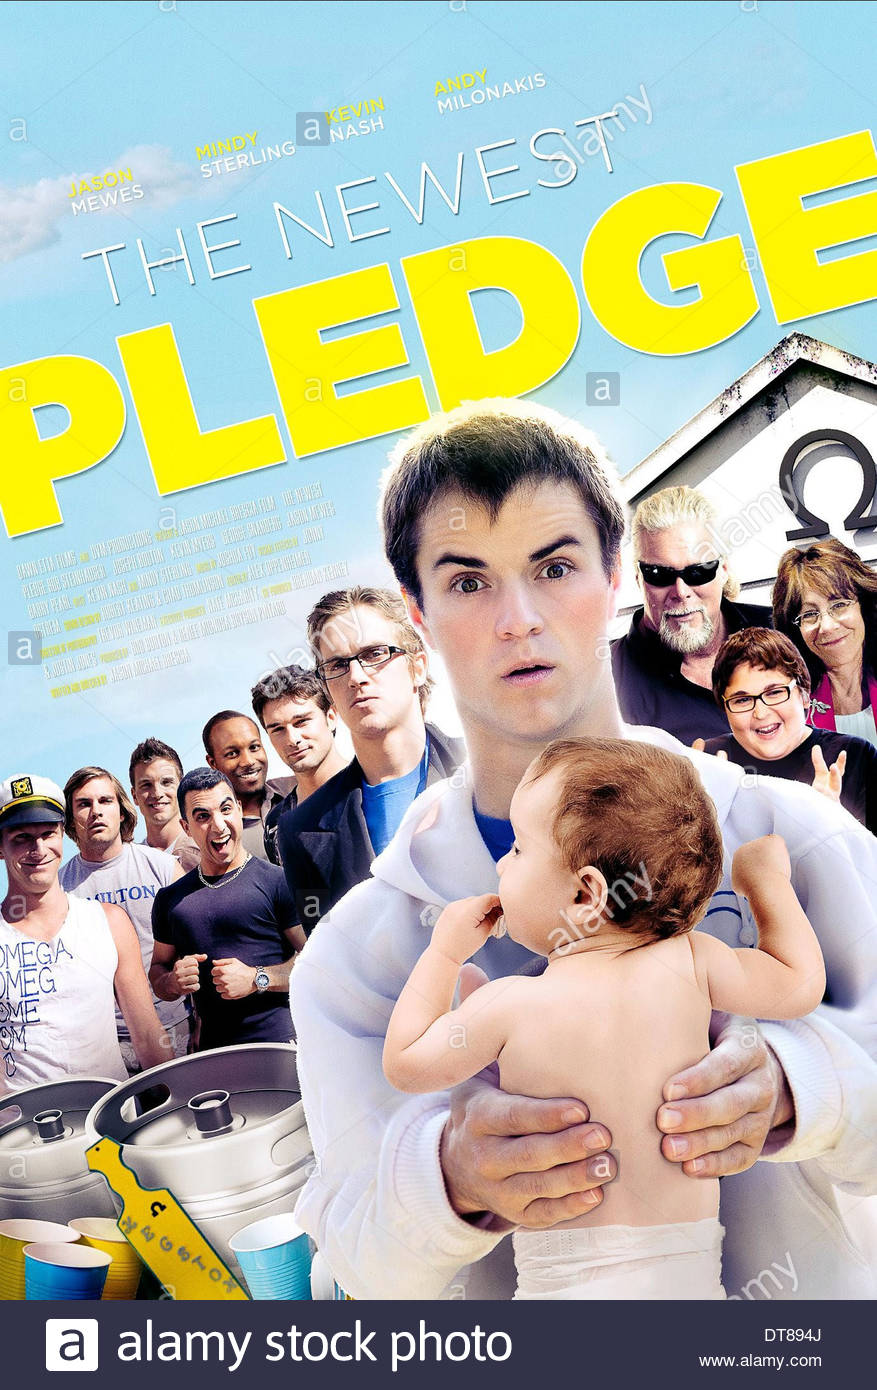 ROB STEINHAUSER POSTER THE NEWEST PLEDGE (2012) - Stock Image